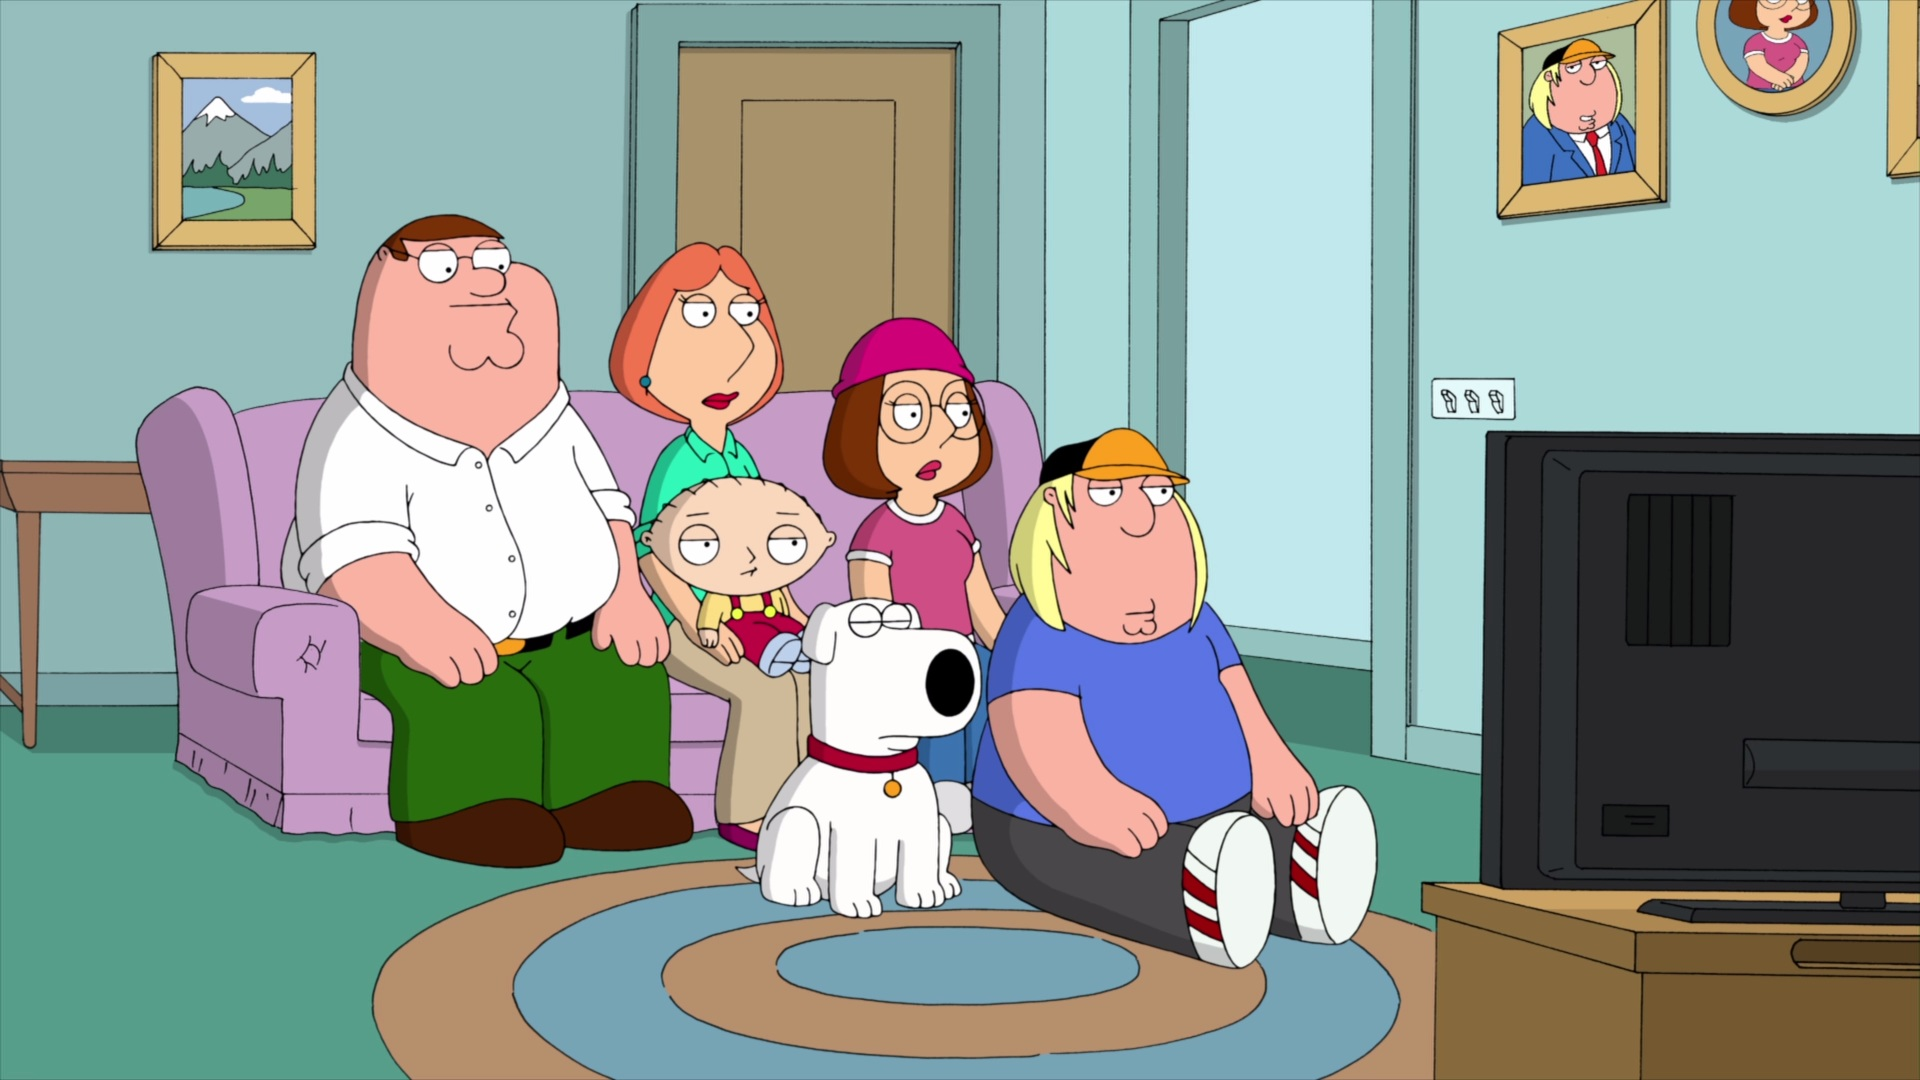 wallpapers of Family Guy You are downloading Family Guy wallpaper 14 1920x1080